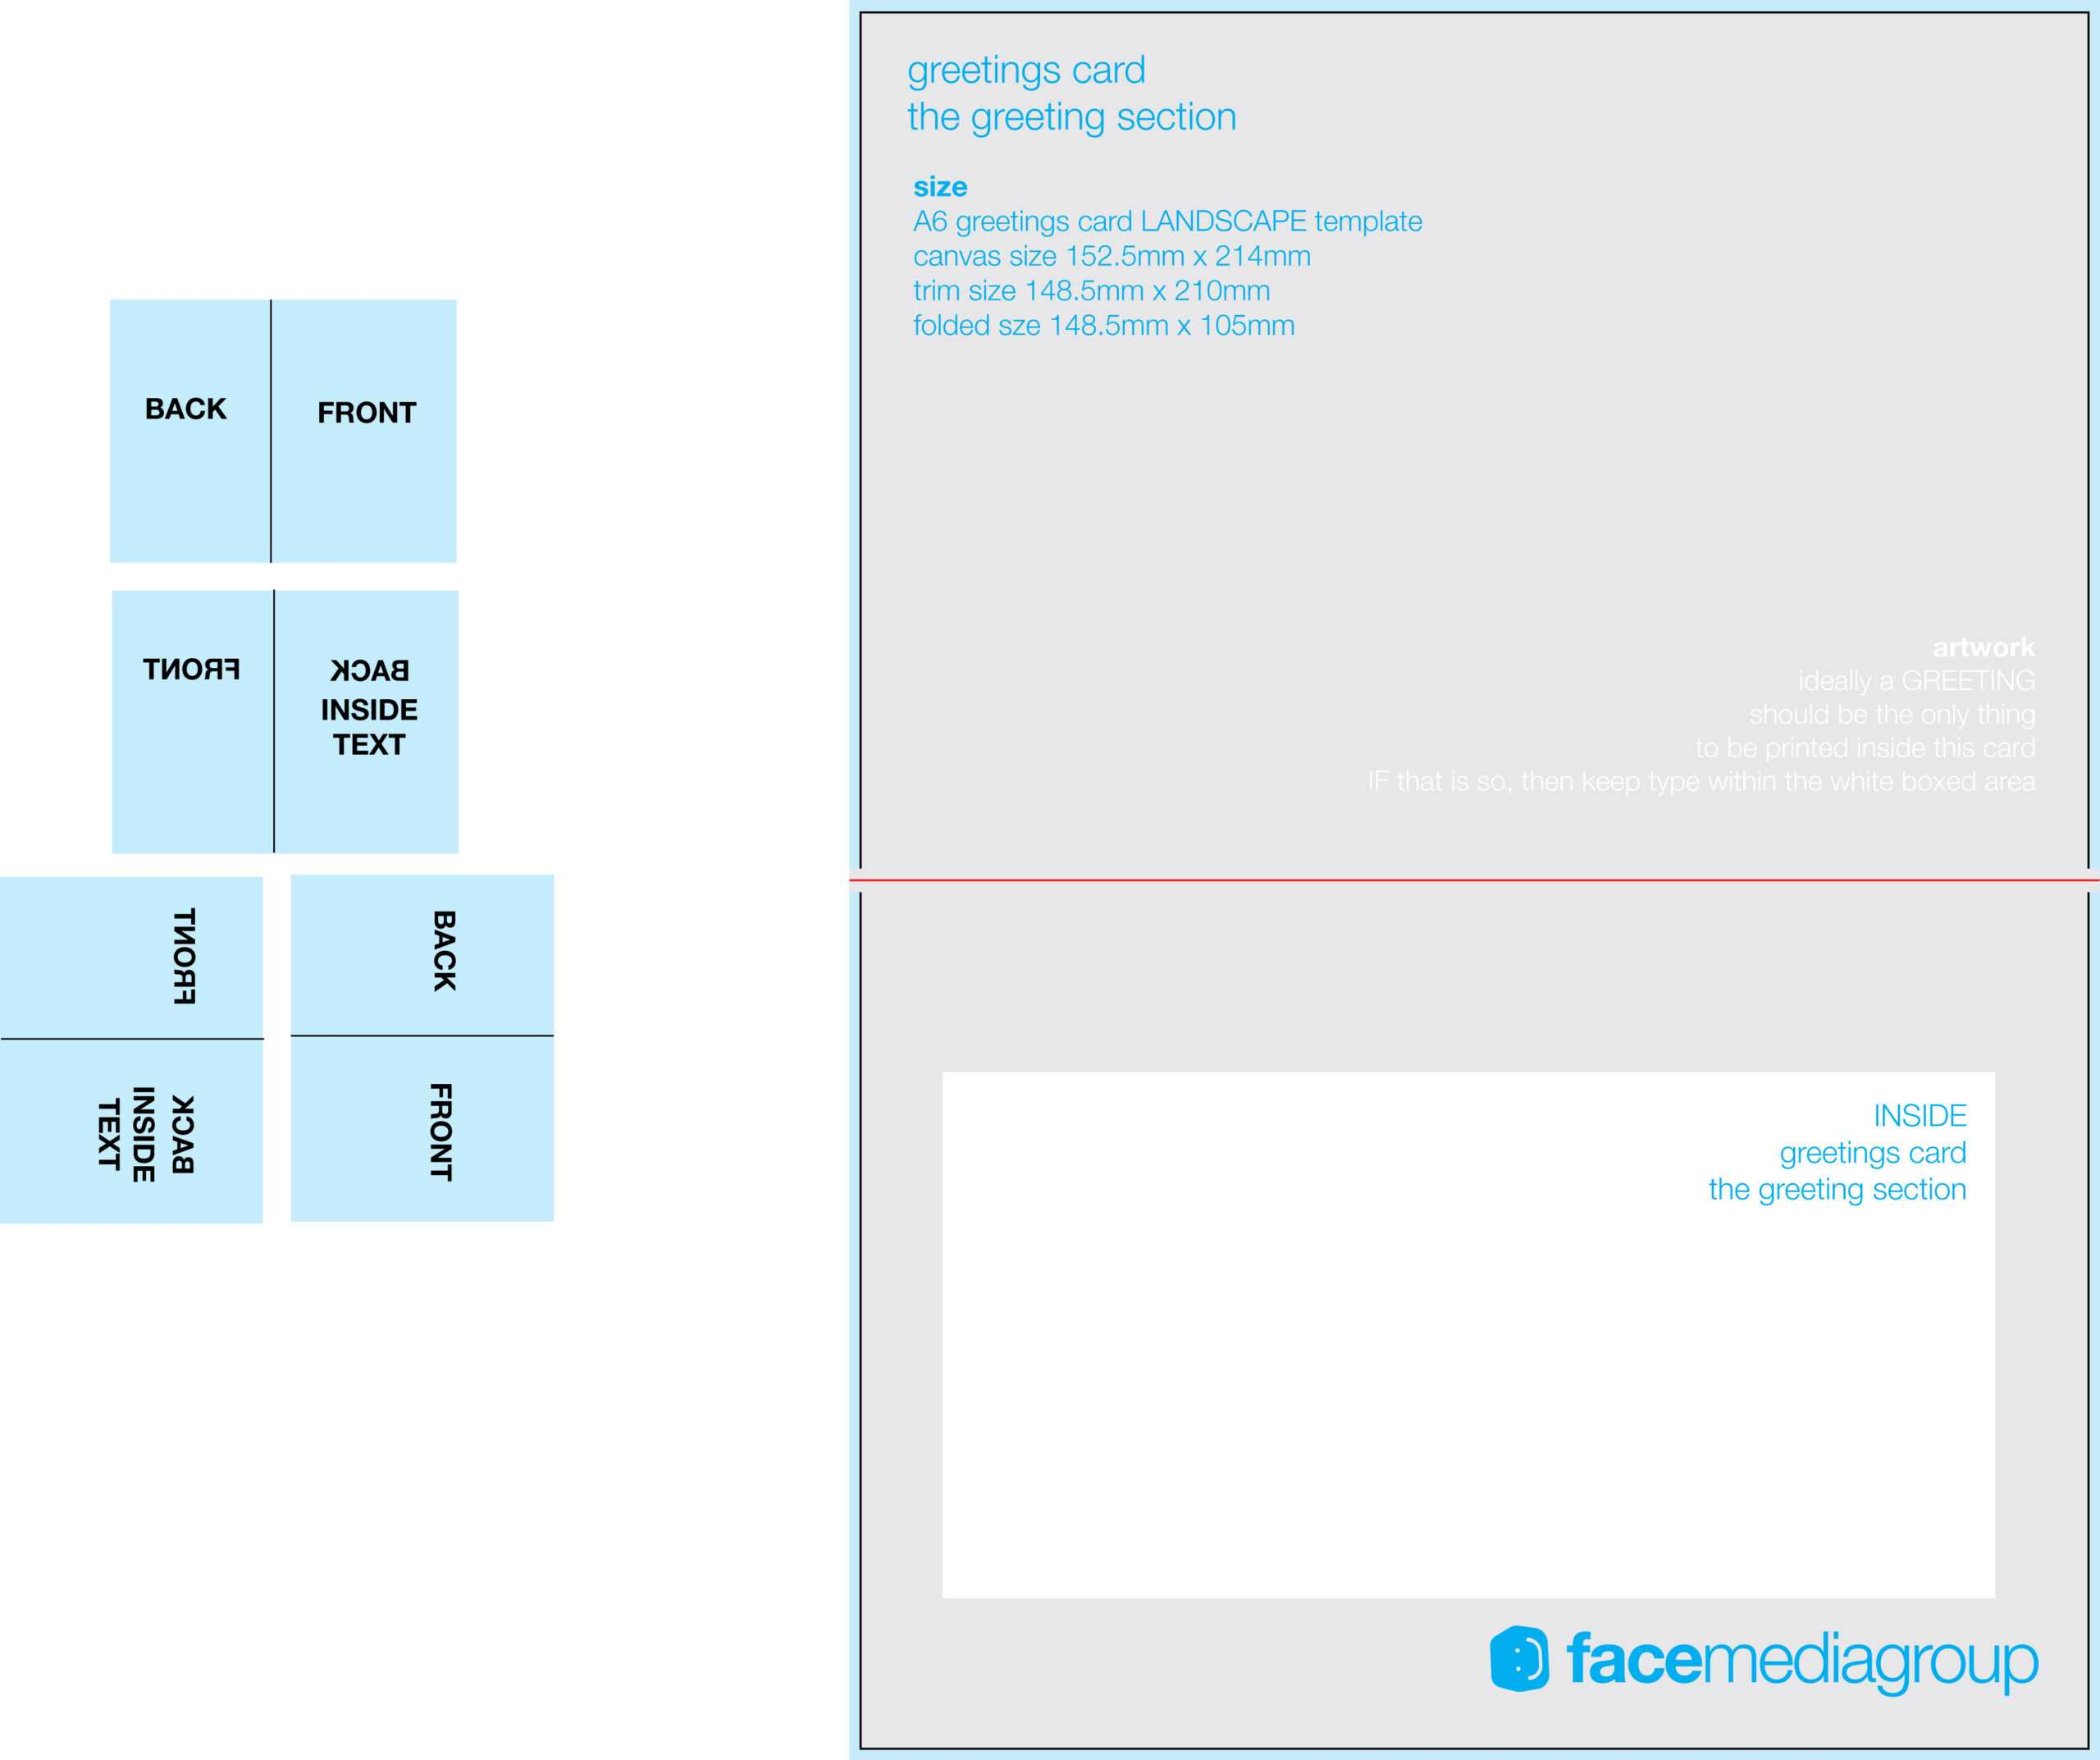 003 Free Blank Greeting Card Templates 314639 Template Ideas Throughout Free Blank Greeting Card Templates For Word